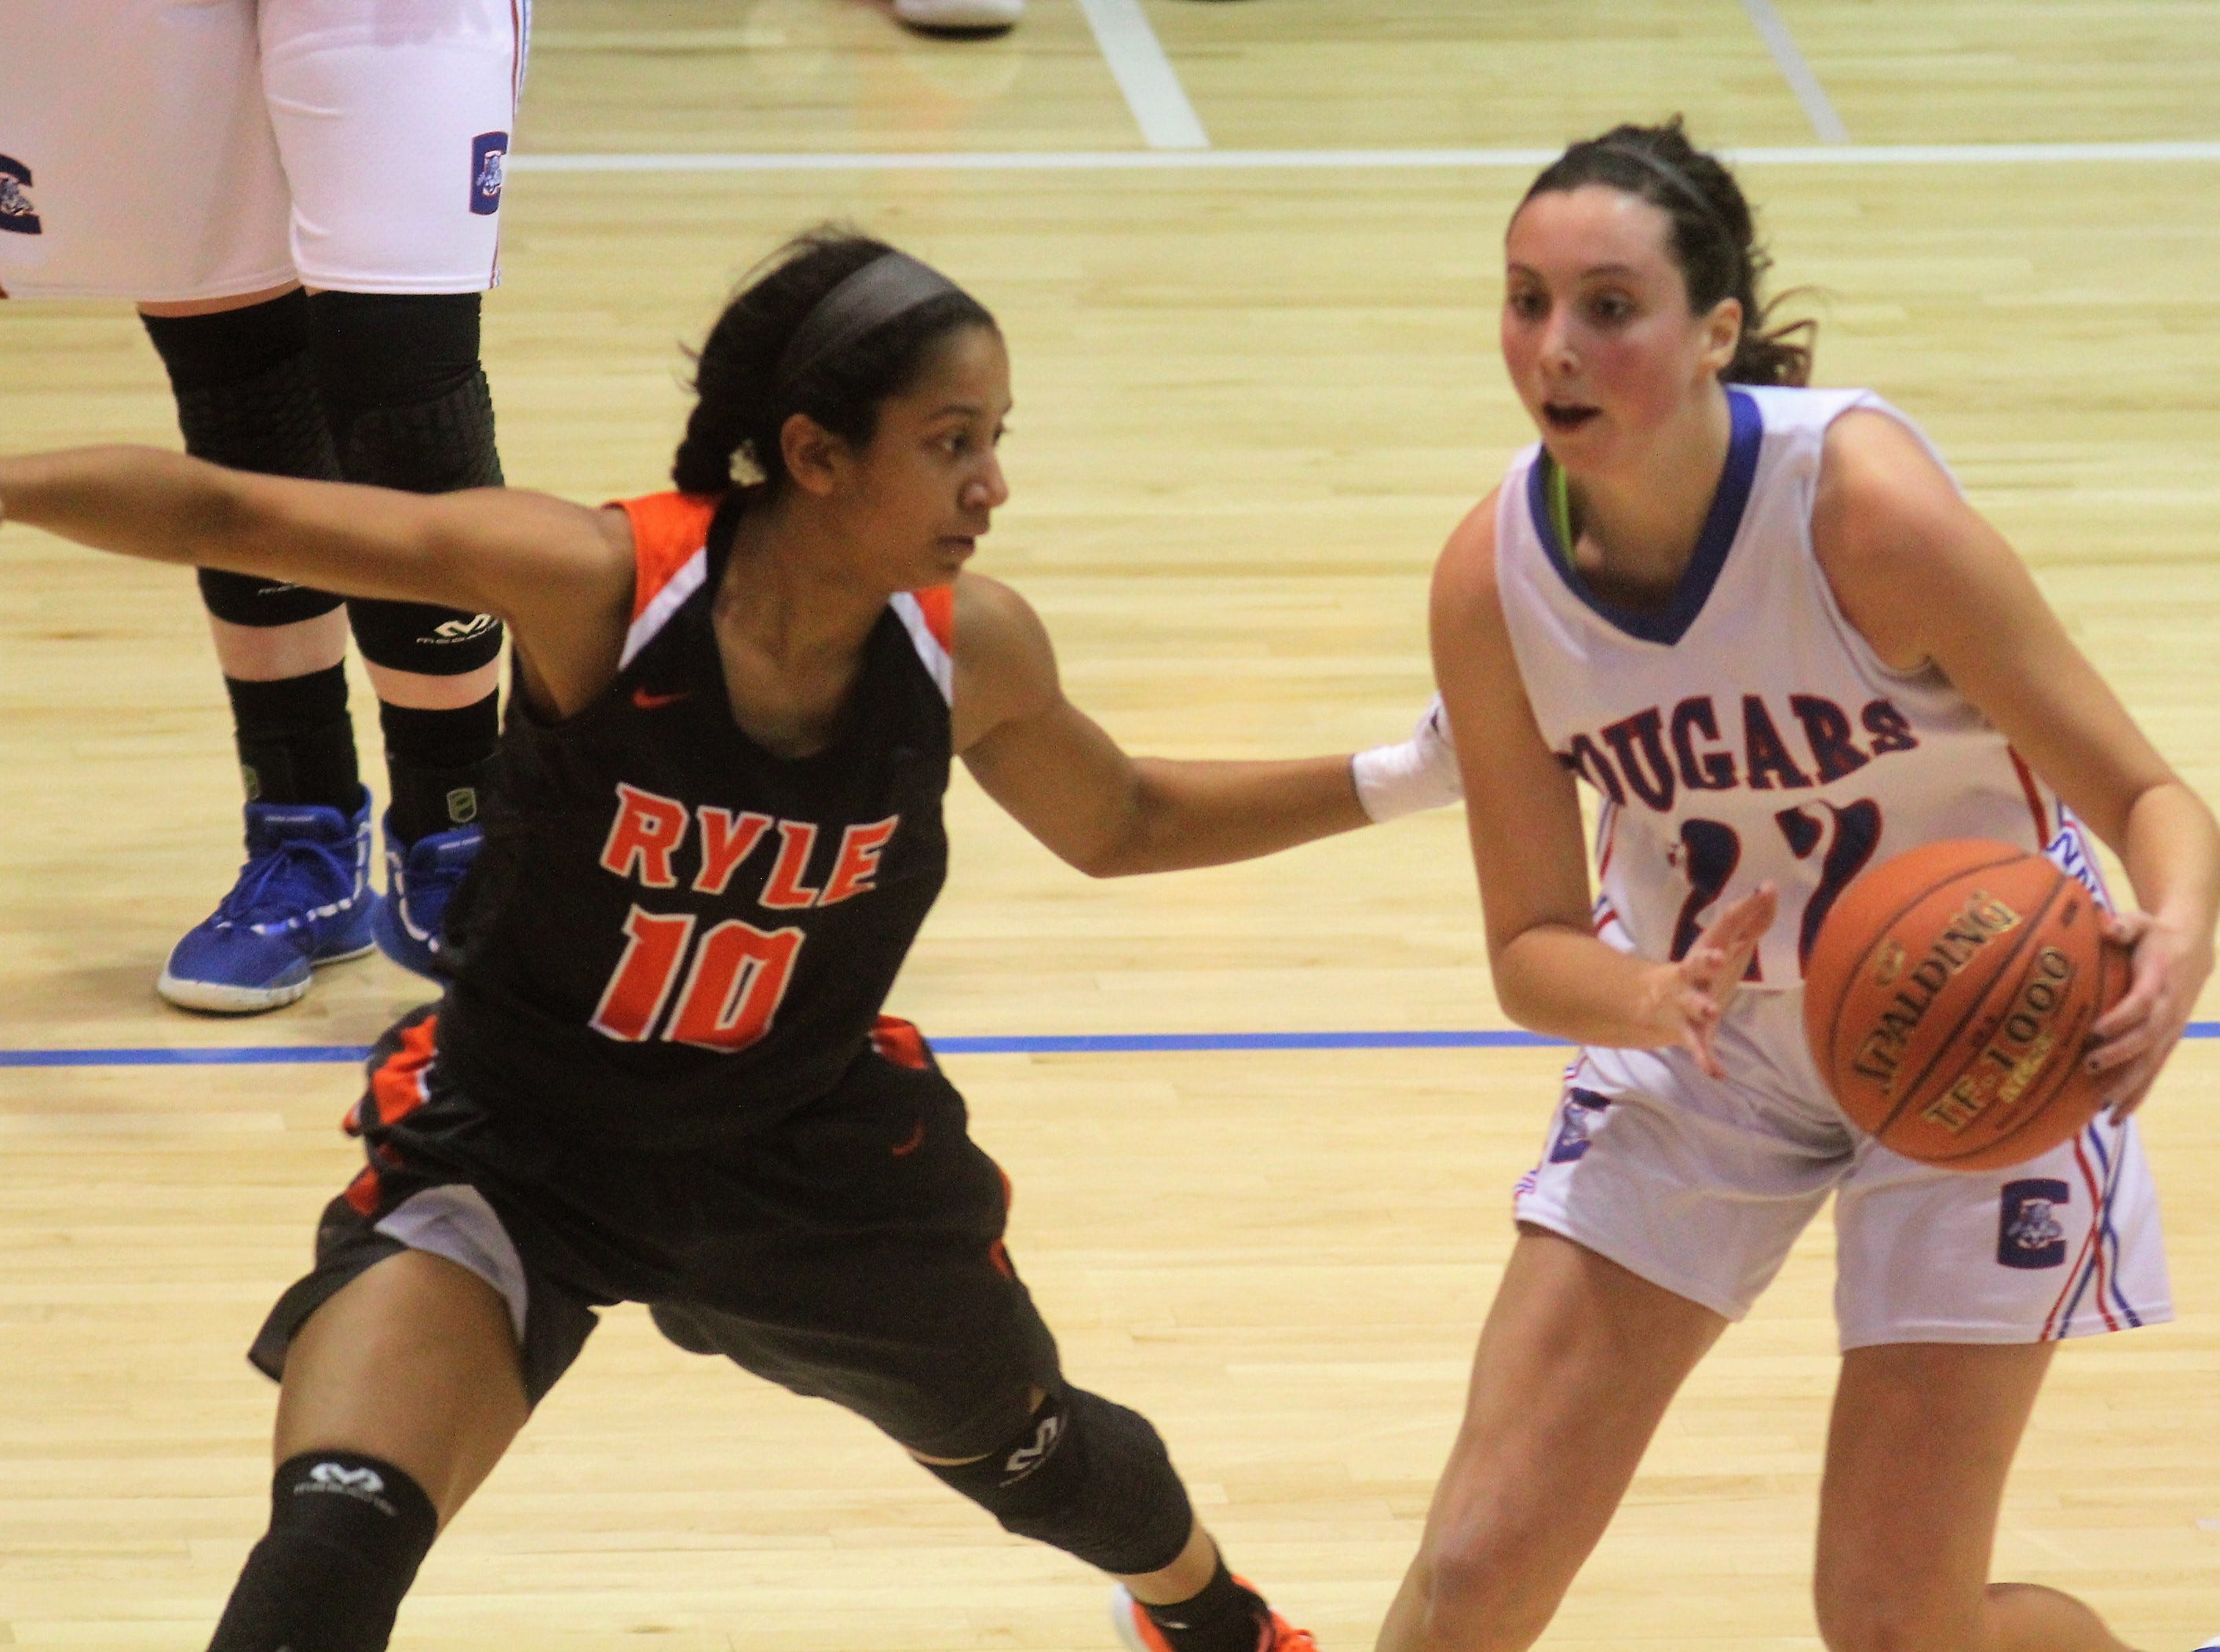 Ryle senior Juliet McGregor keeps an eye on Conner senior Maddie Burcham as Ryle defeated Conner 60-49 in a girls basketball district game Dec. 7, 2018 at Conner High School, Hebron KY.